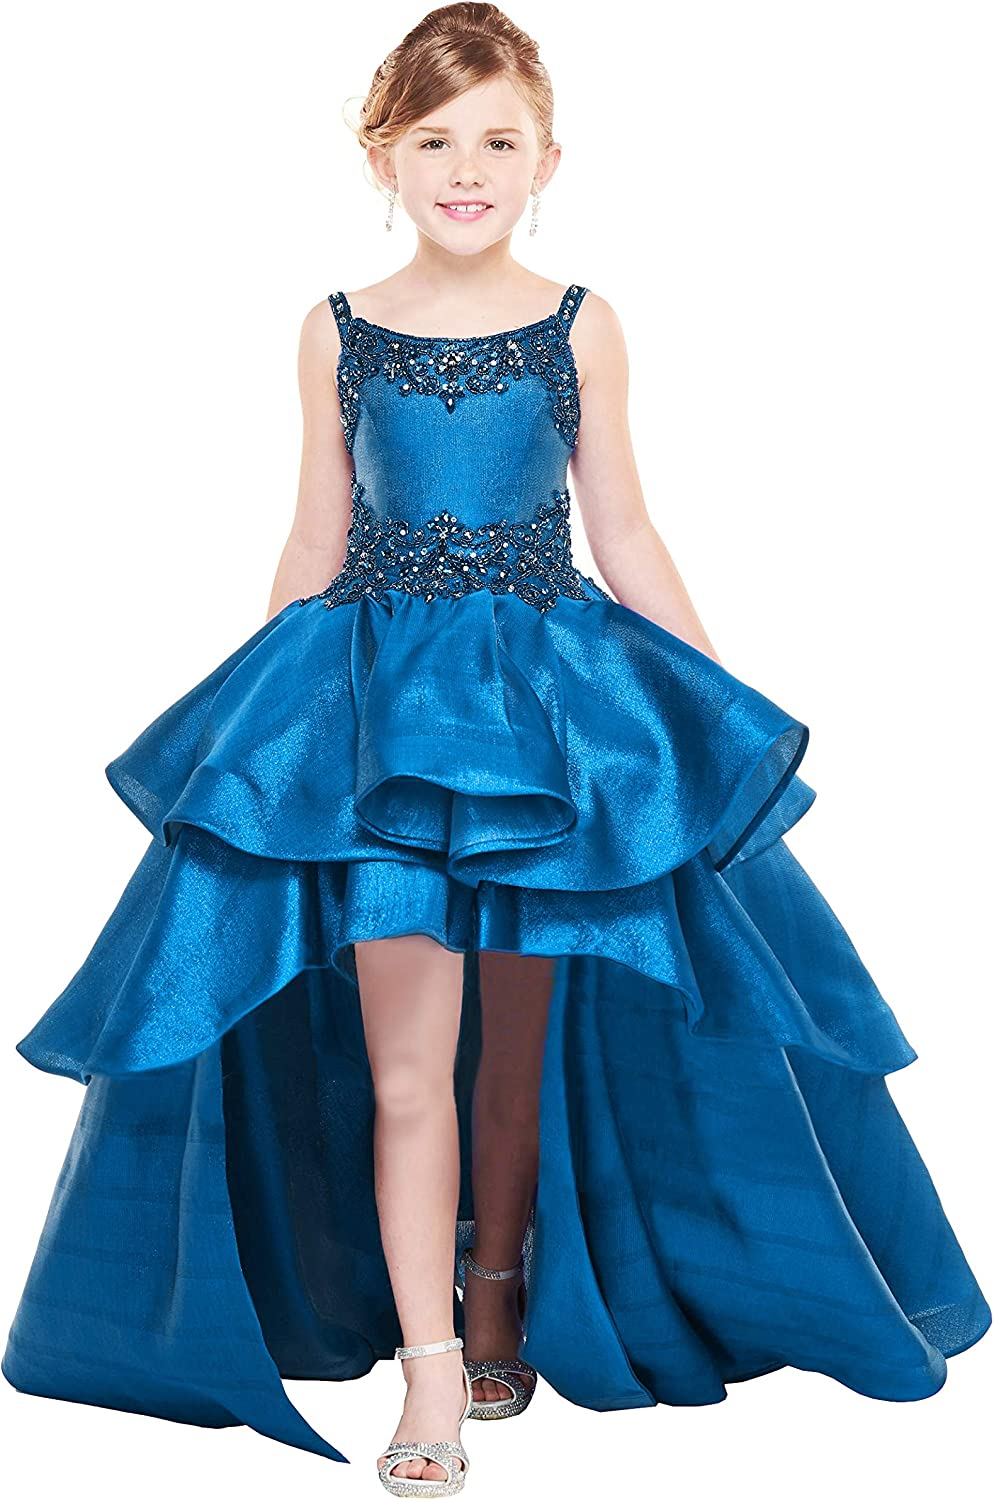 Honeydress Girl's Hight Low Girls Pageant Dresses Square Neck with Straps Beaded Kids Evening Party Dresses